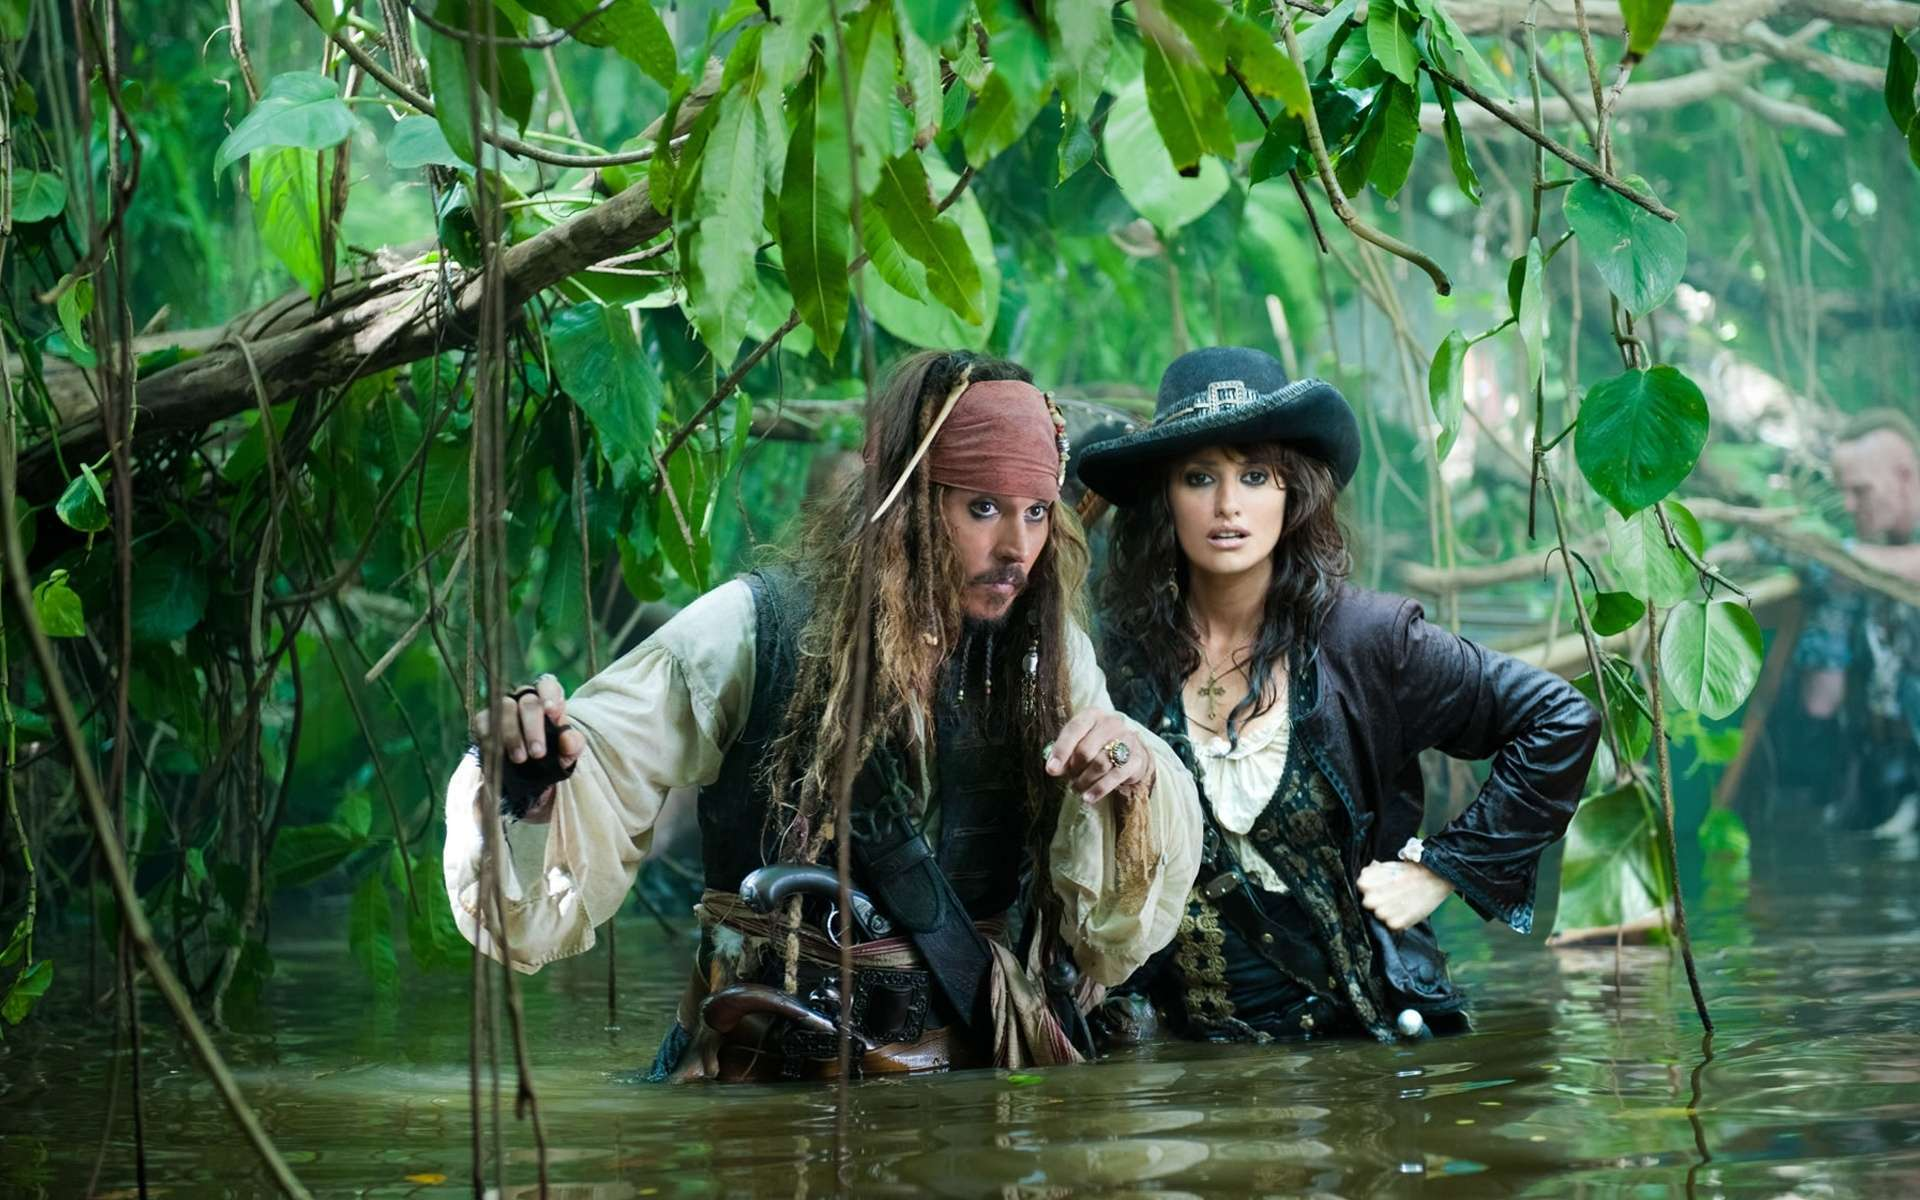 Pirates of the caribbean wallpaper hd wallpapers - Pirates of the caribbean images hd ...